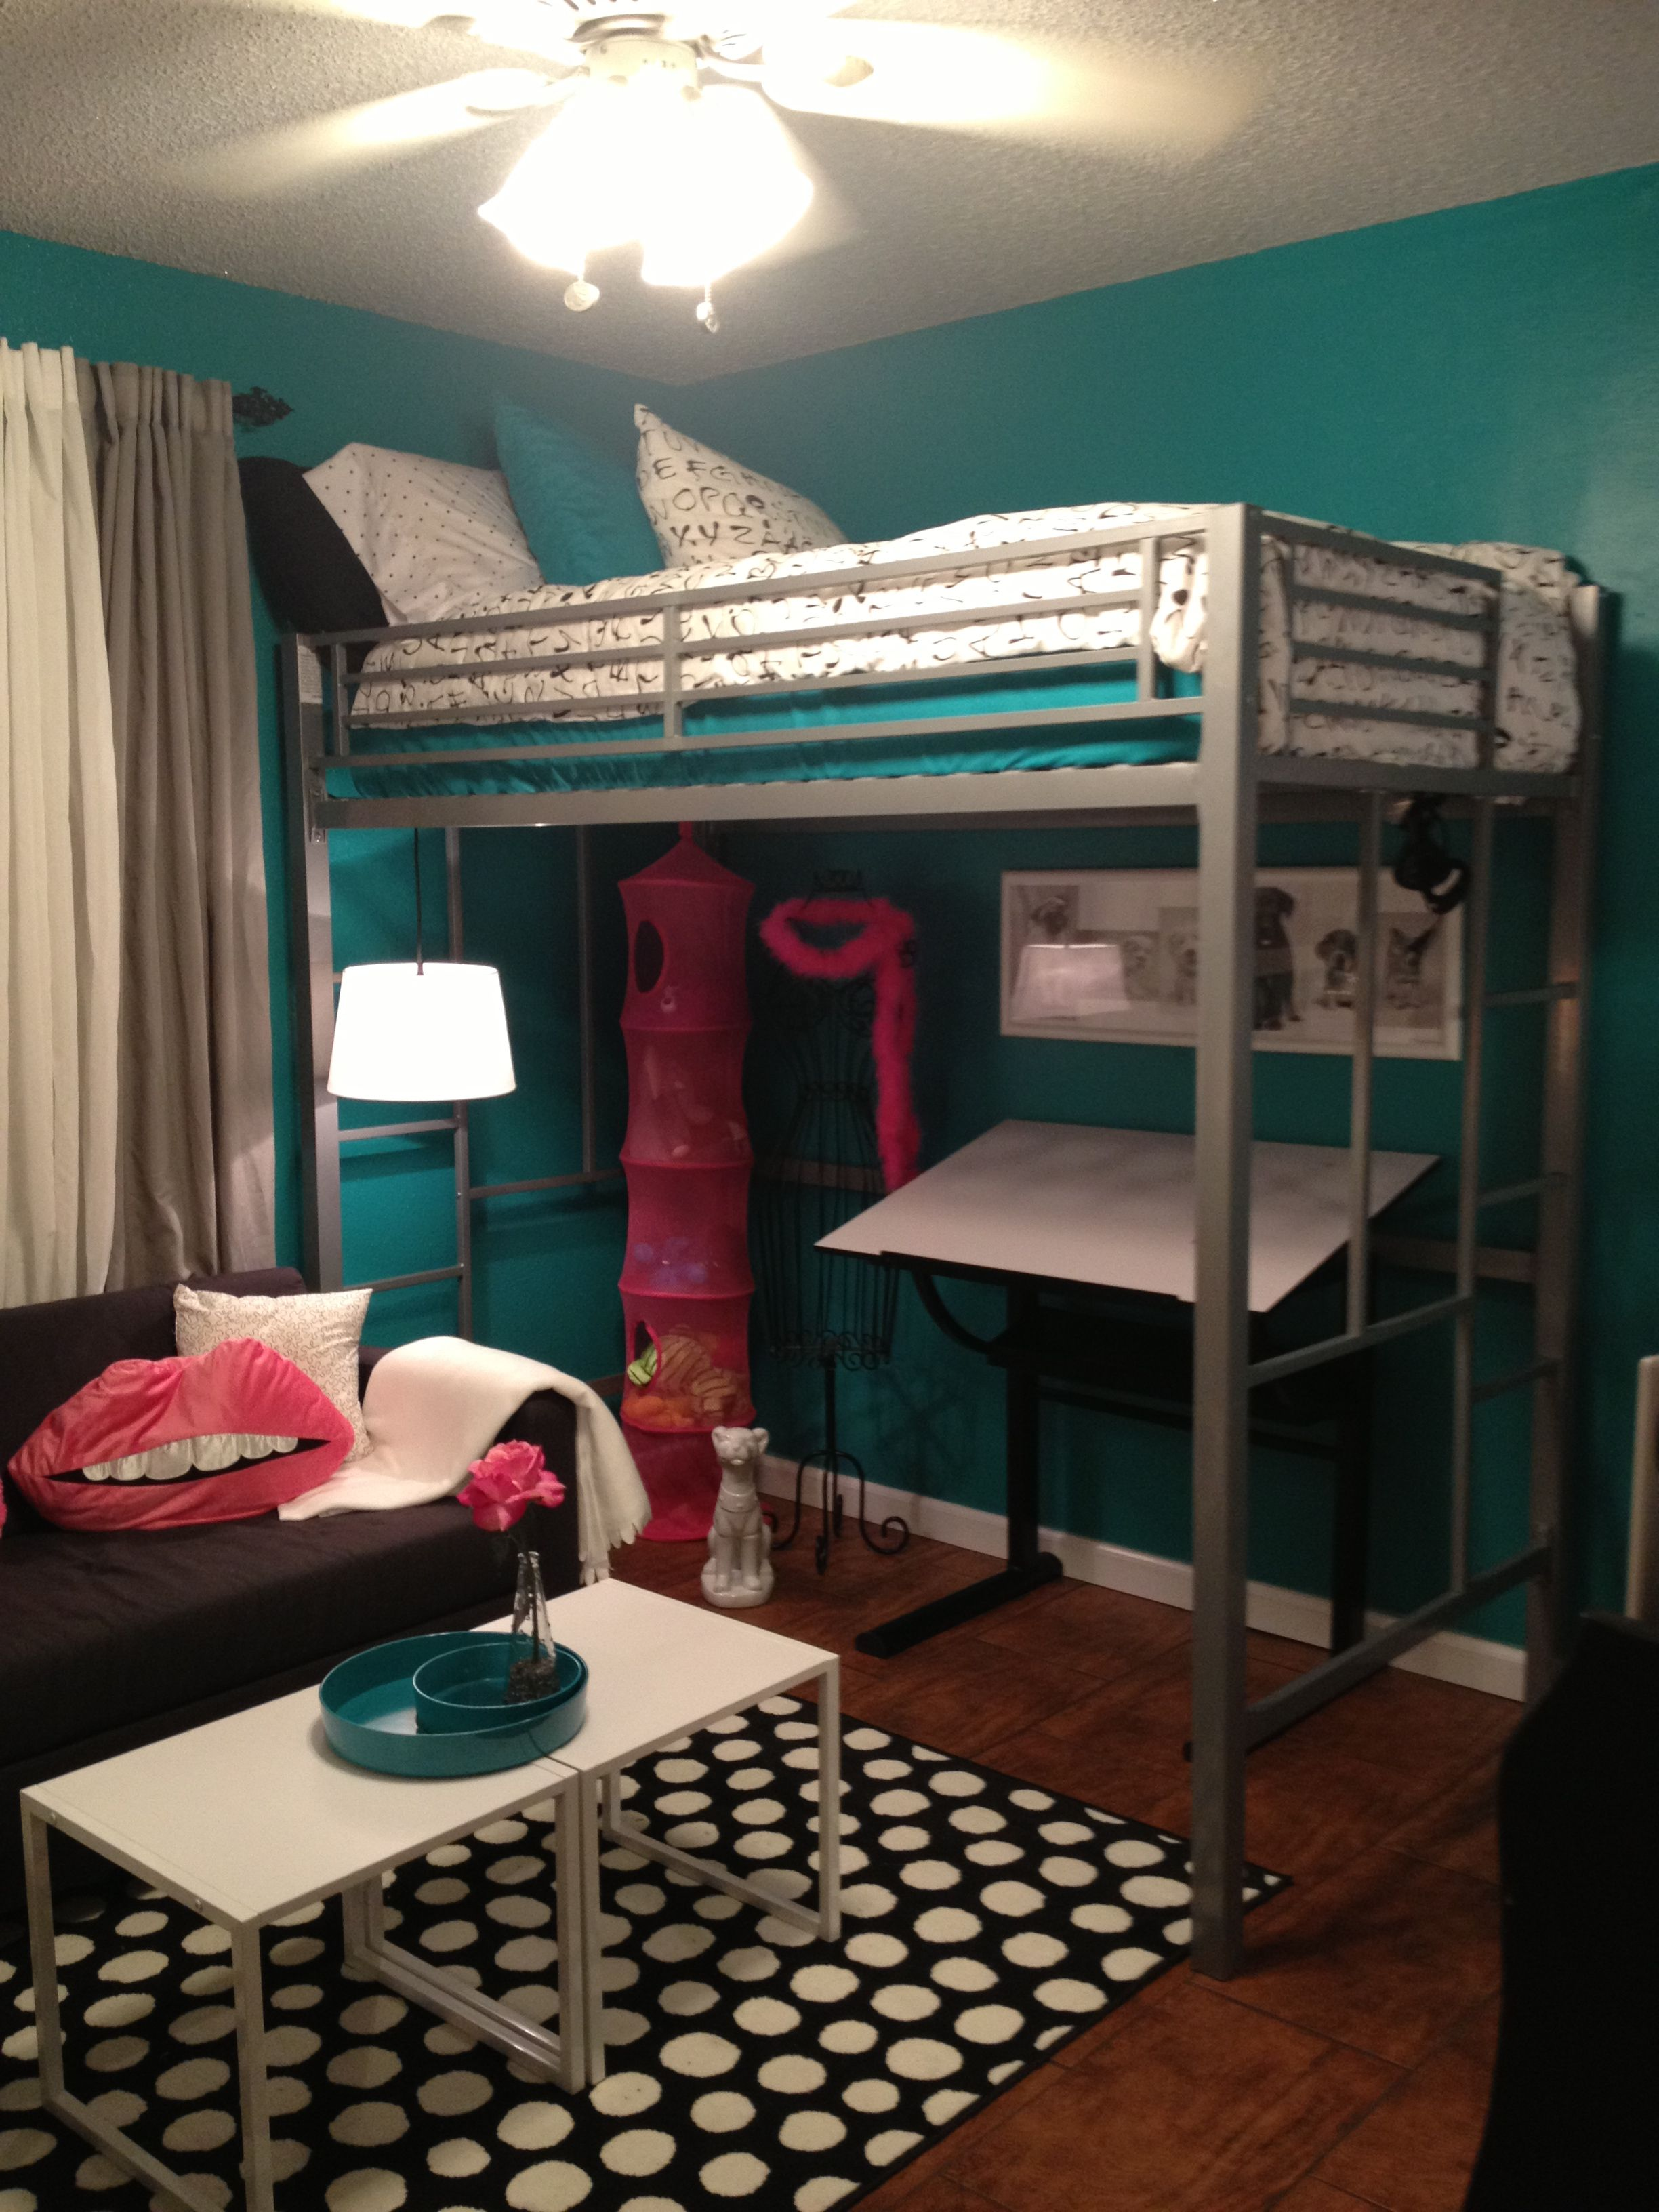 Teen room tween room bedroom idea loft bed black and for Ideas for teen bedroom